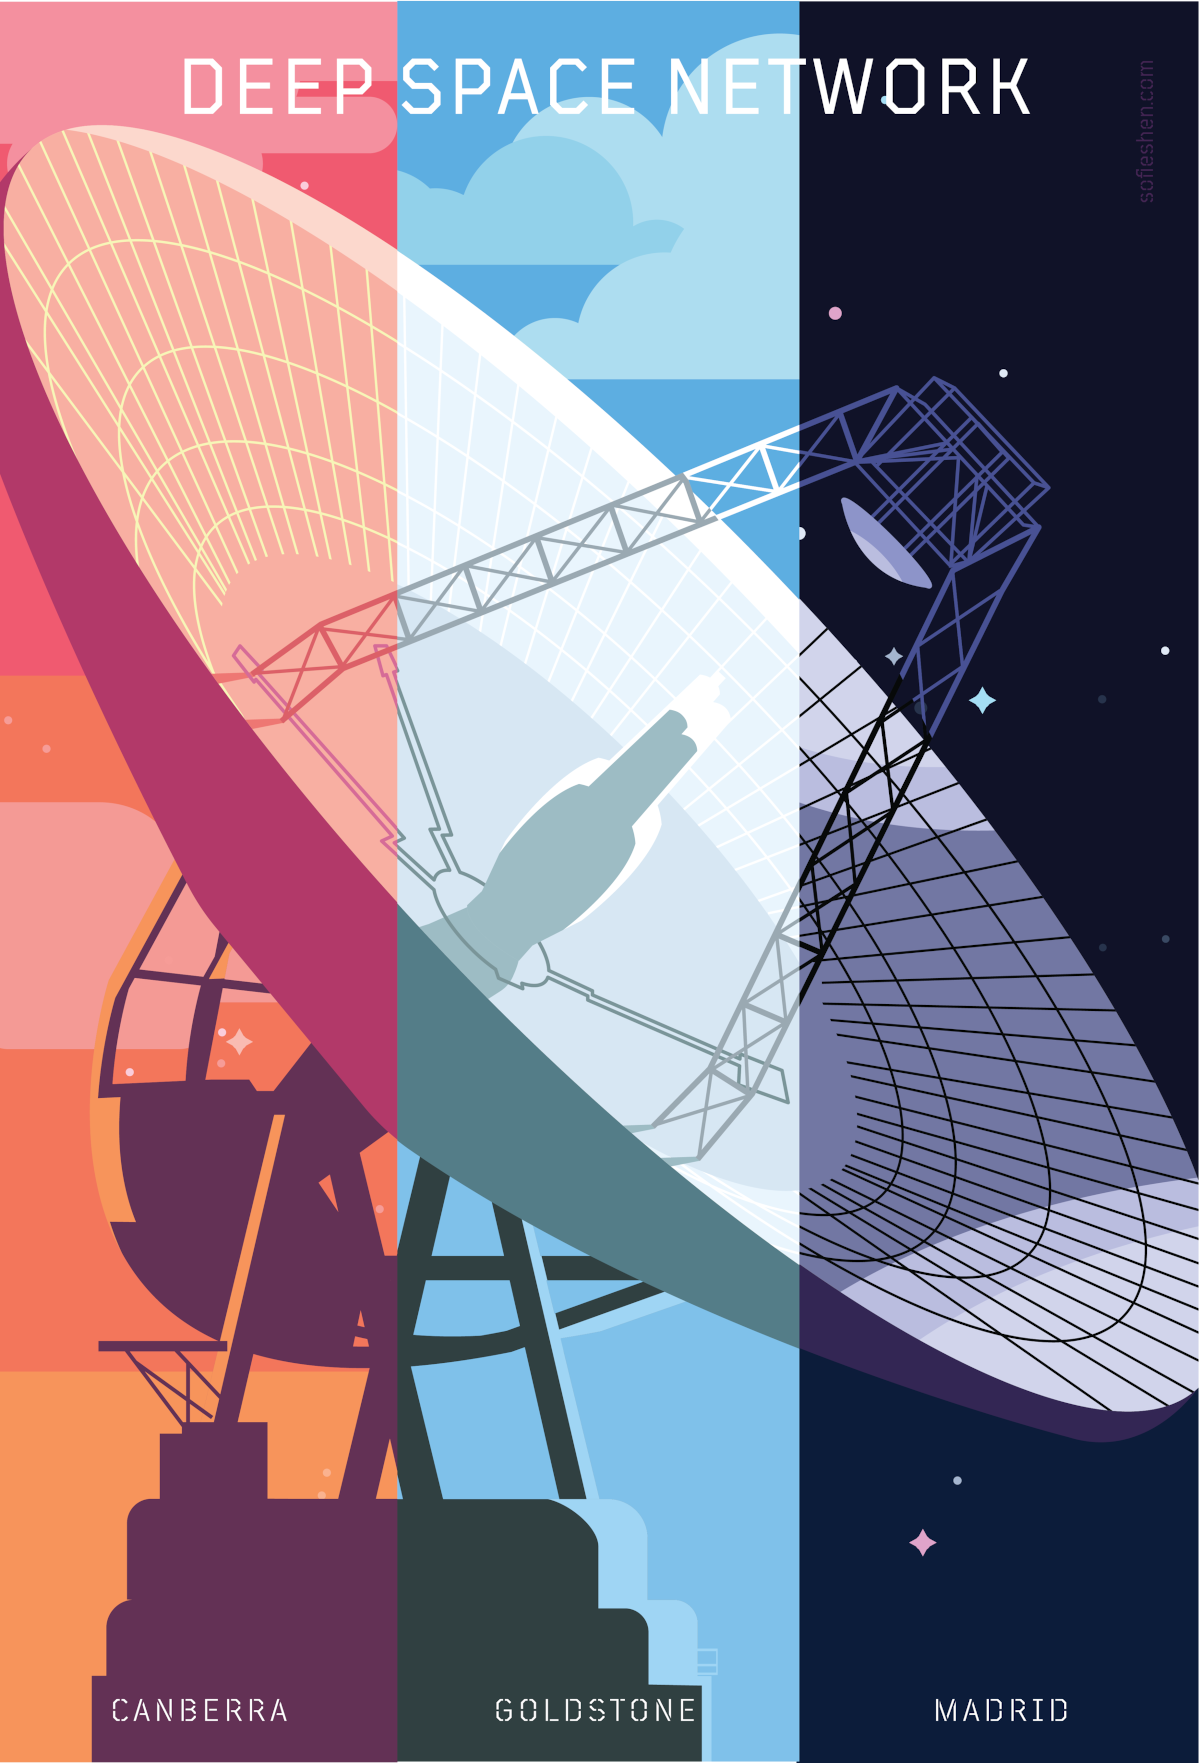 """A large satellite dish divided into three colour segments, labelled Canberra, Goldstone, Madrid. Text at the top of the image reads """"Deep Space Network""""."""